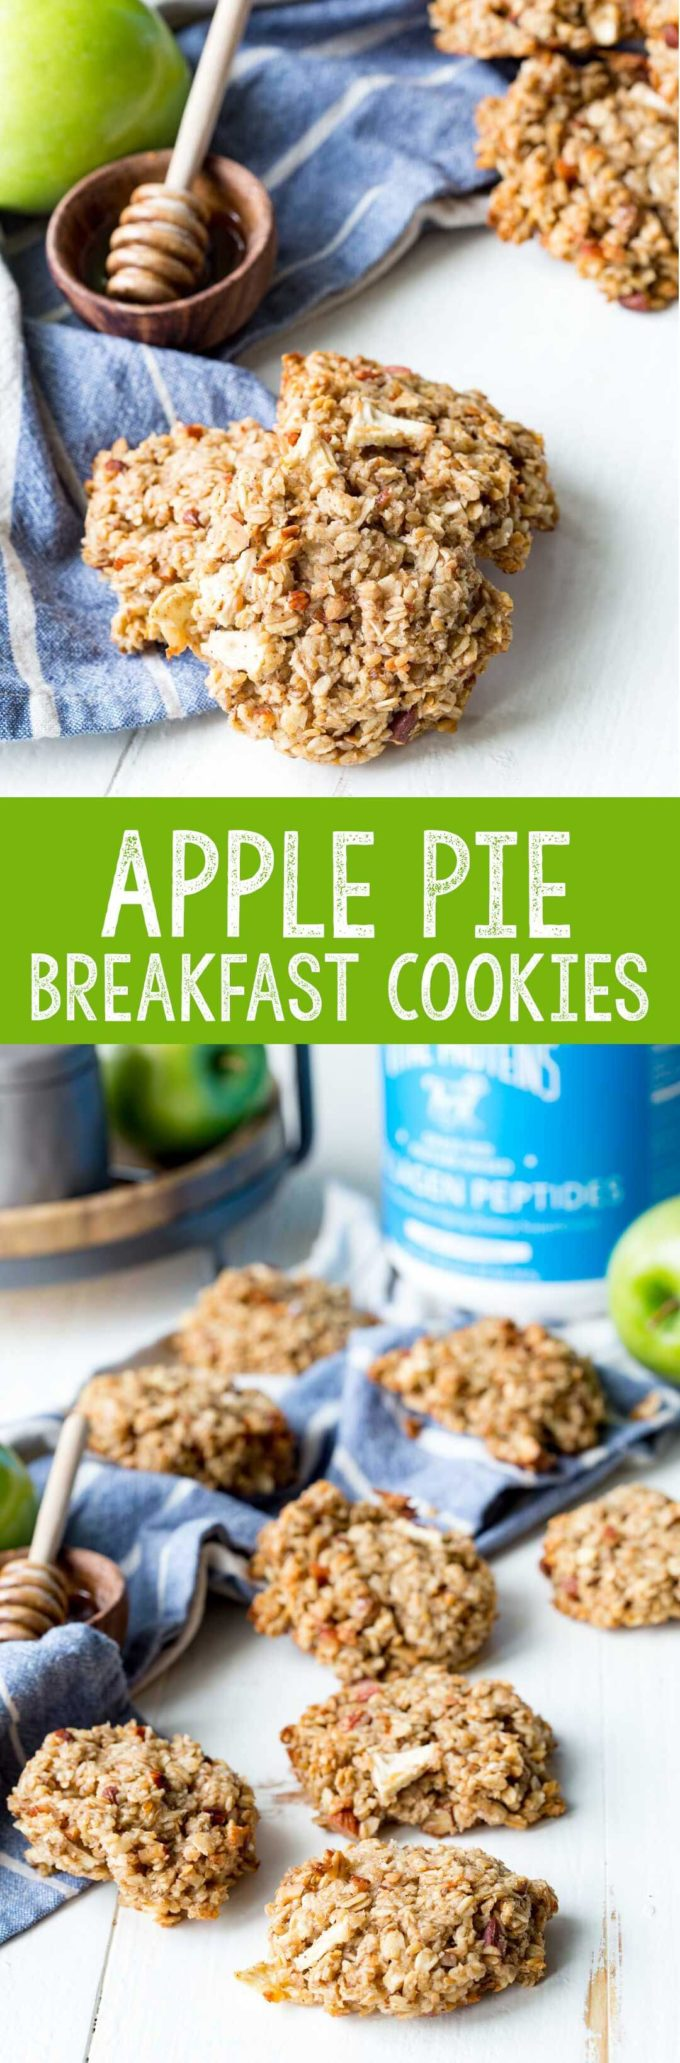 Apple Pie breakfast cookies are a healthy way to start the day